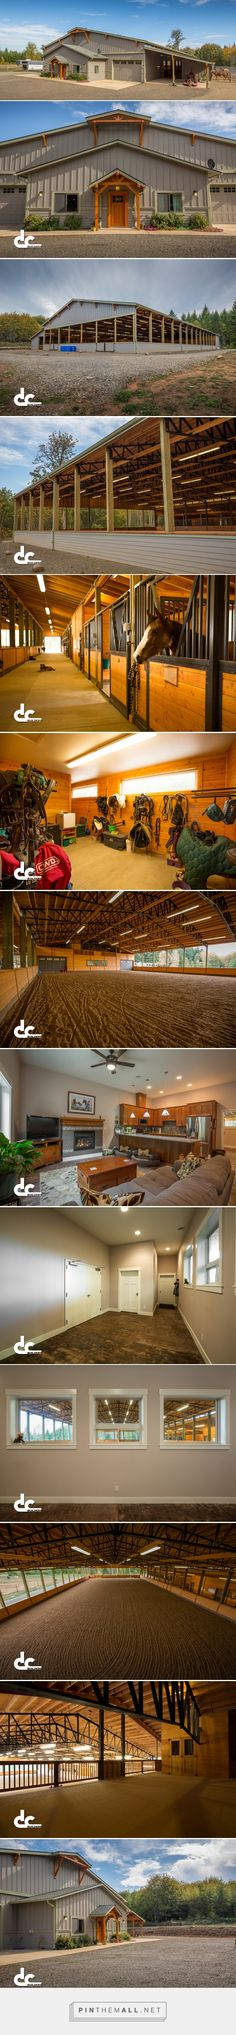 Covered Riding Arena With Apartment In Oregon City, OR - DC Builders - created via https://pinthemall.net(Minutes Layout)